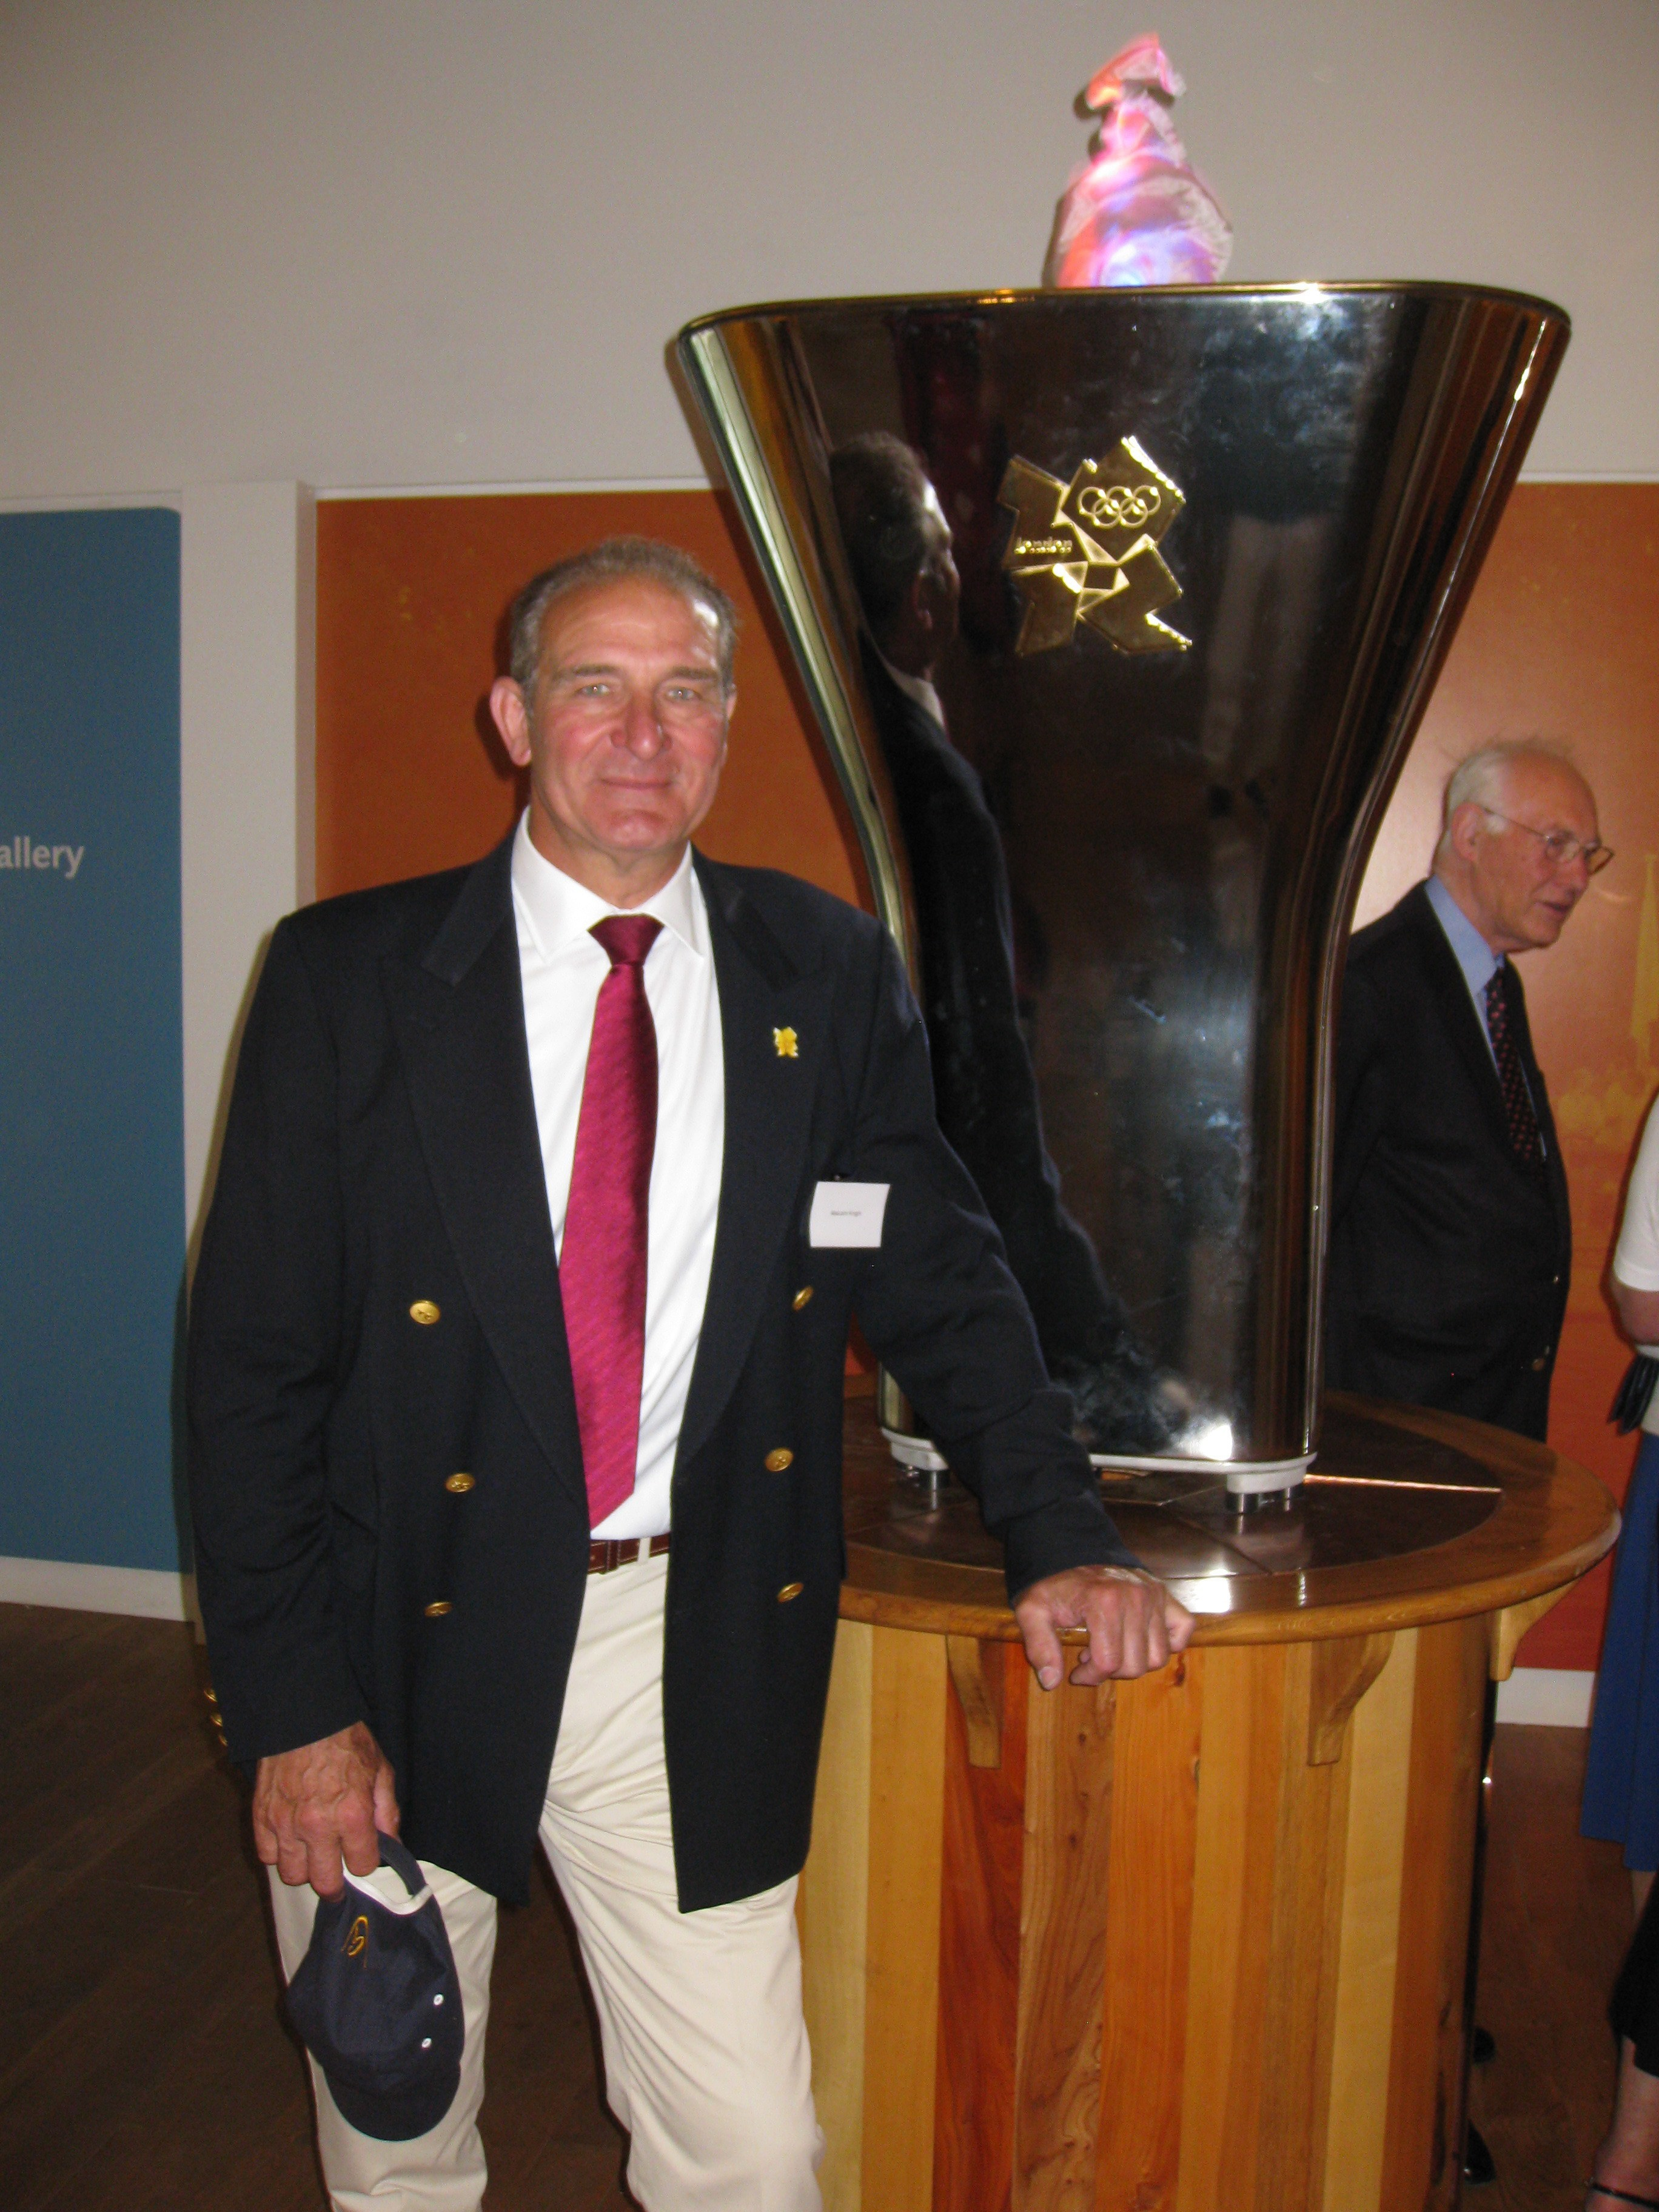 Malcolm Knight with the Olympic Cauldron in the River and Rowing Museum at Henley